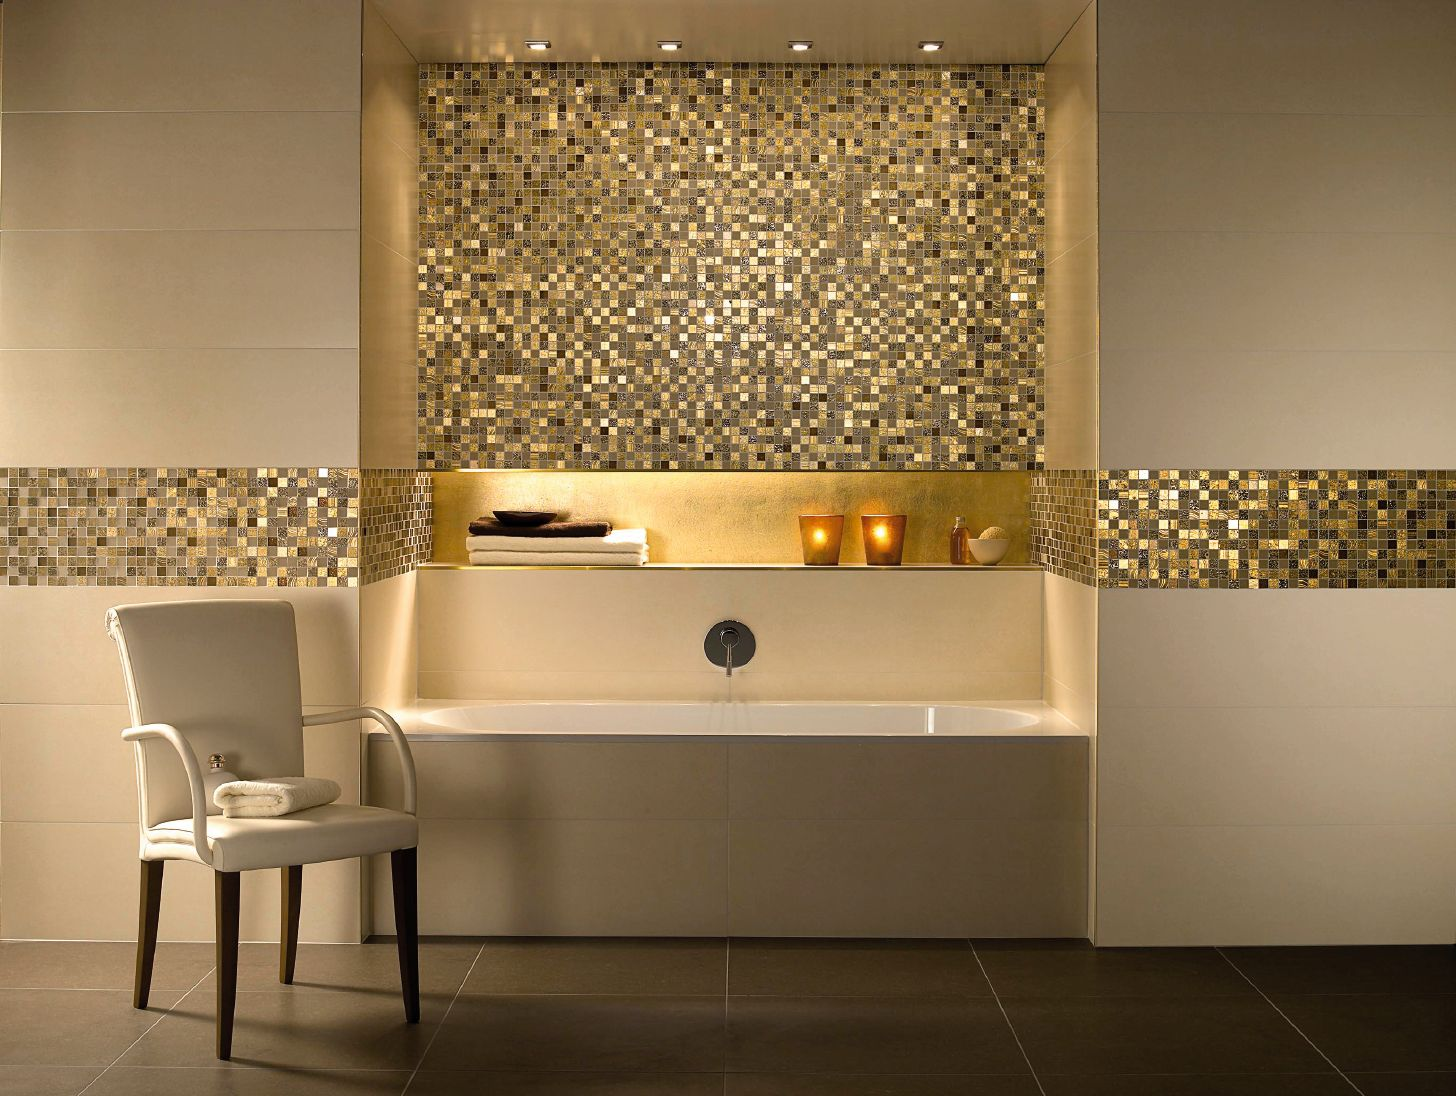 SCHIENE Featured In Brass Trims Out The Niche, And Provides Matching Edging  To The Mosaic Wall.